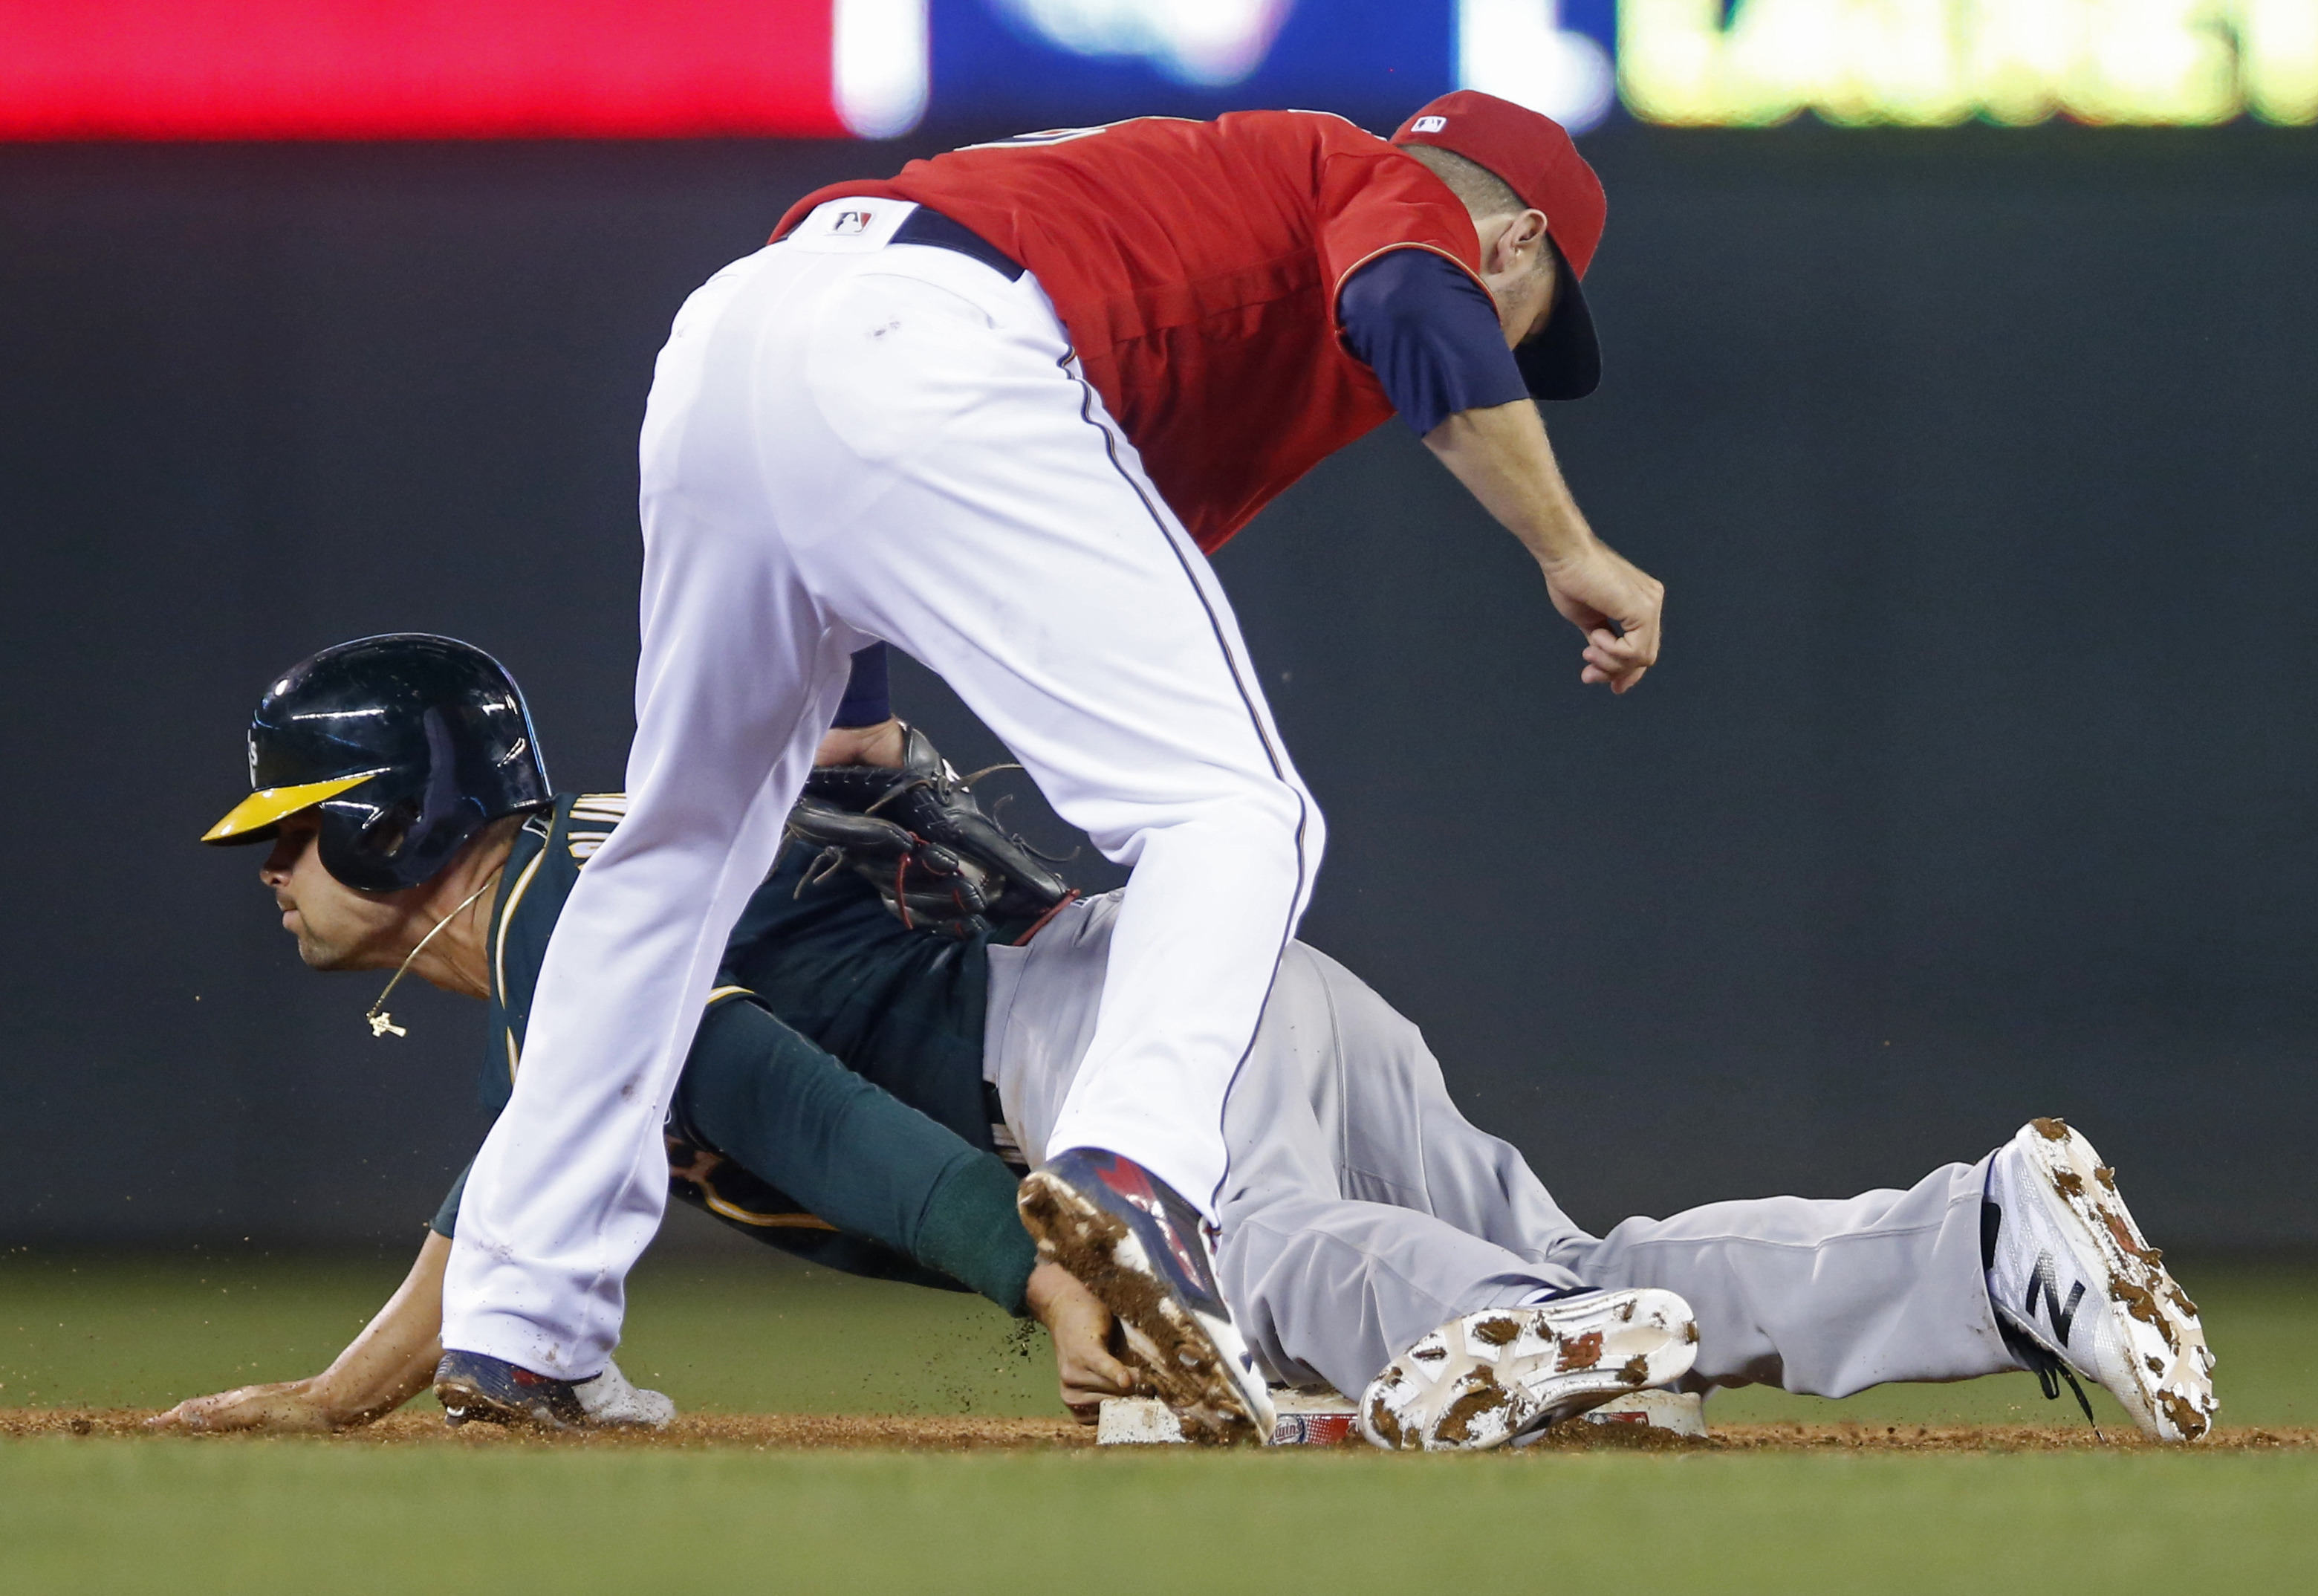 Oakland Athletics' Jake Smolinski, left, beats the tag by Minnesota Twins second baseman Brian Dozier as he steals second base in the fifth inning of a baseball game Tuesday, July 5, 2016, in Minneapolis. (AP Photo/Jim Mone)